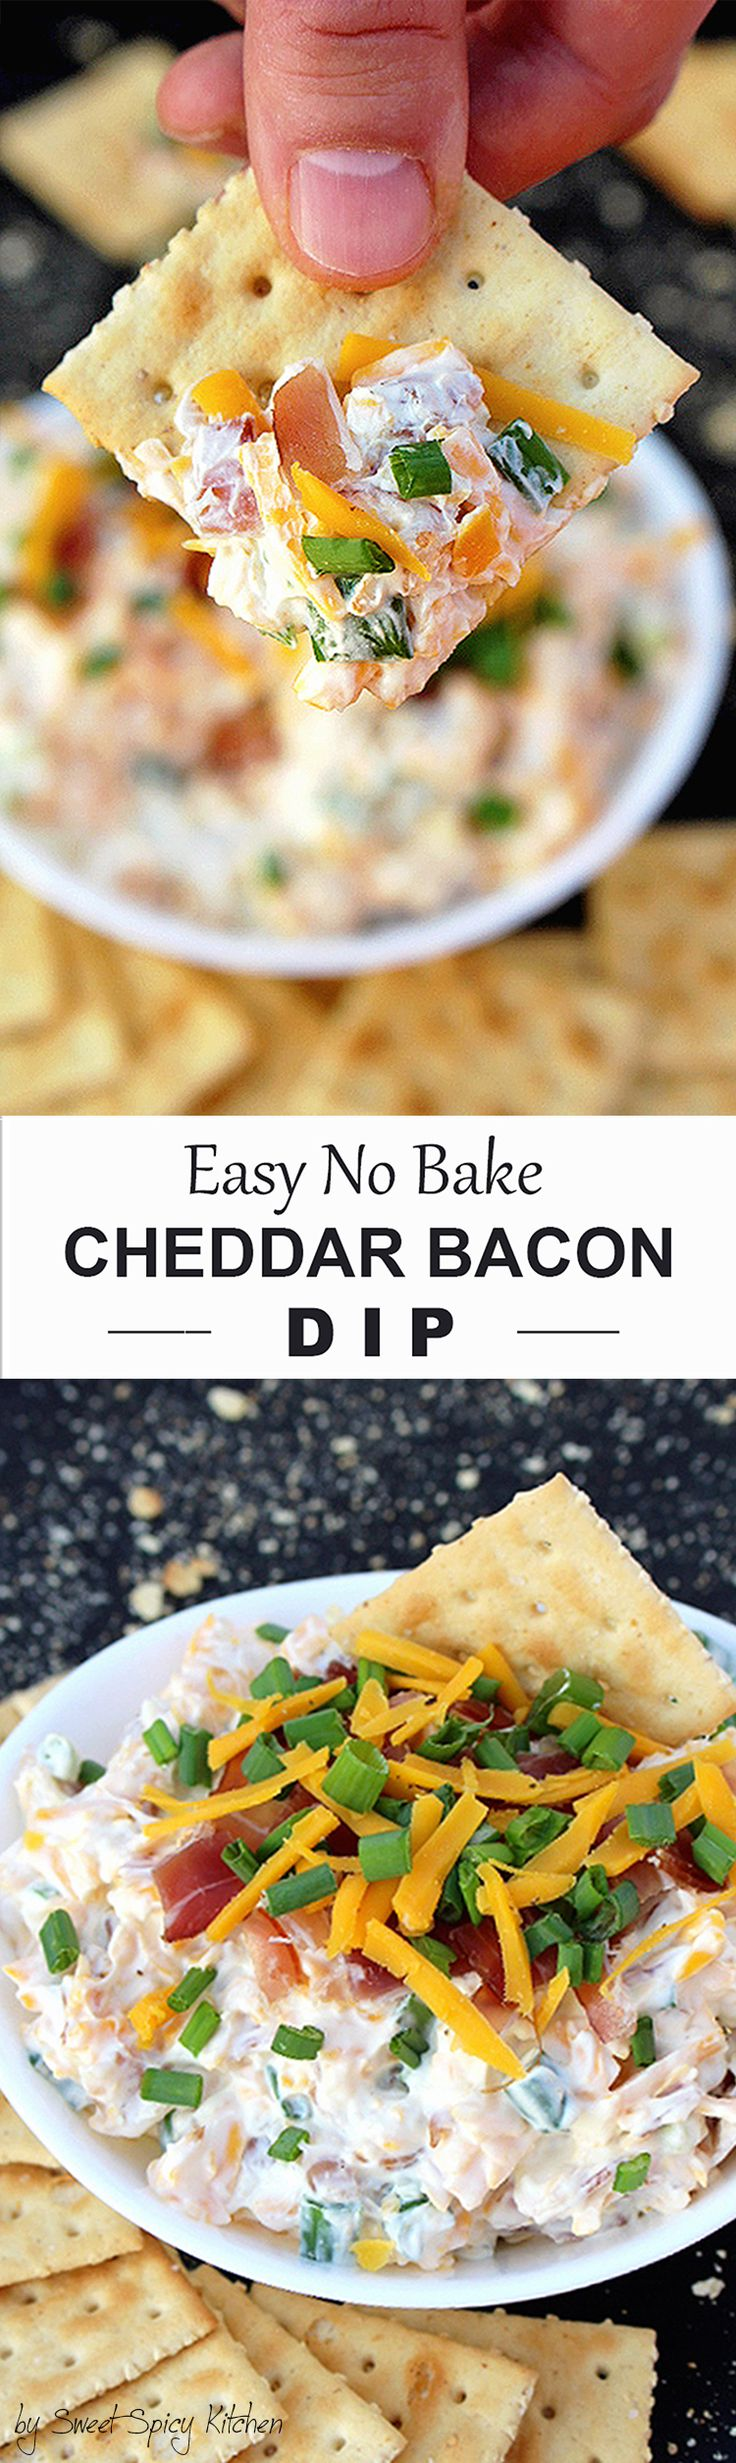 Are you a football fan? Our favorite appetizer recipe for the Game Day is a dip that takes only 5 minutes to prepare - No Bake Cheddar Bacon Dip :-)